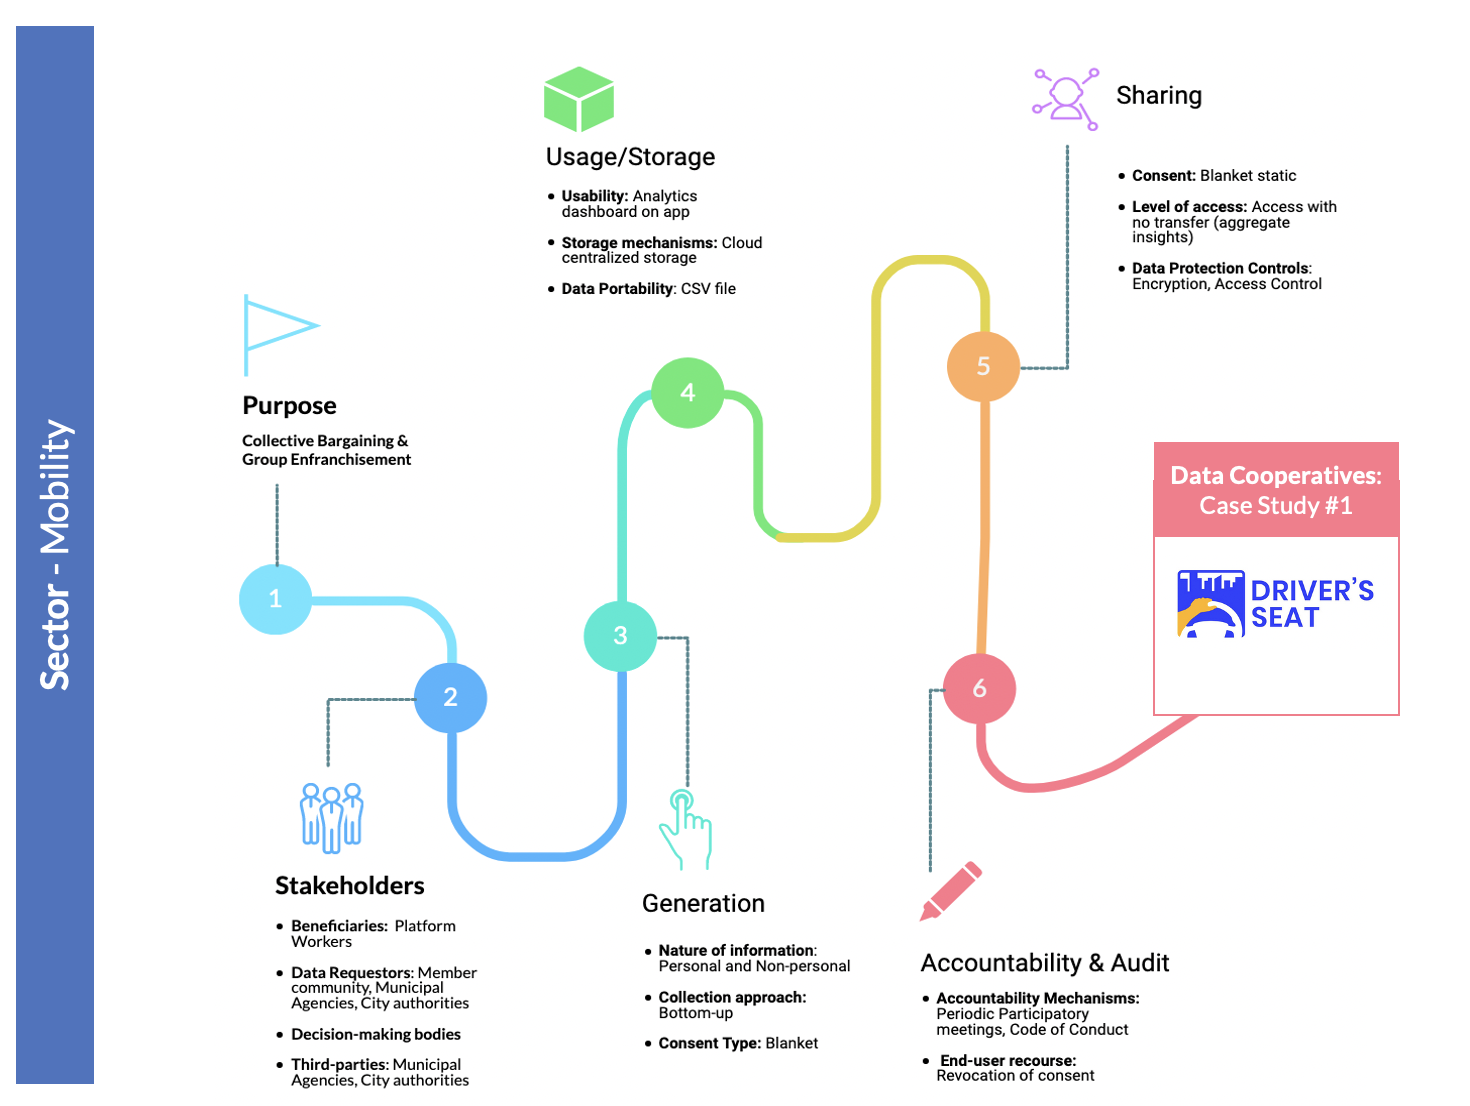 Figure 12: Sample User Journey with case study